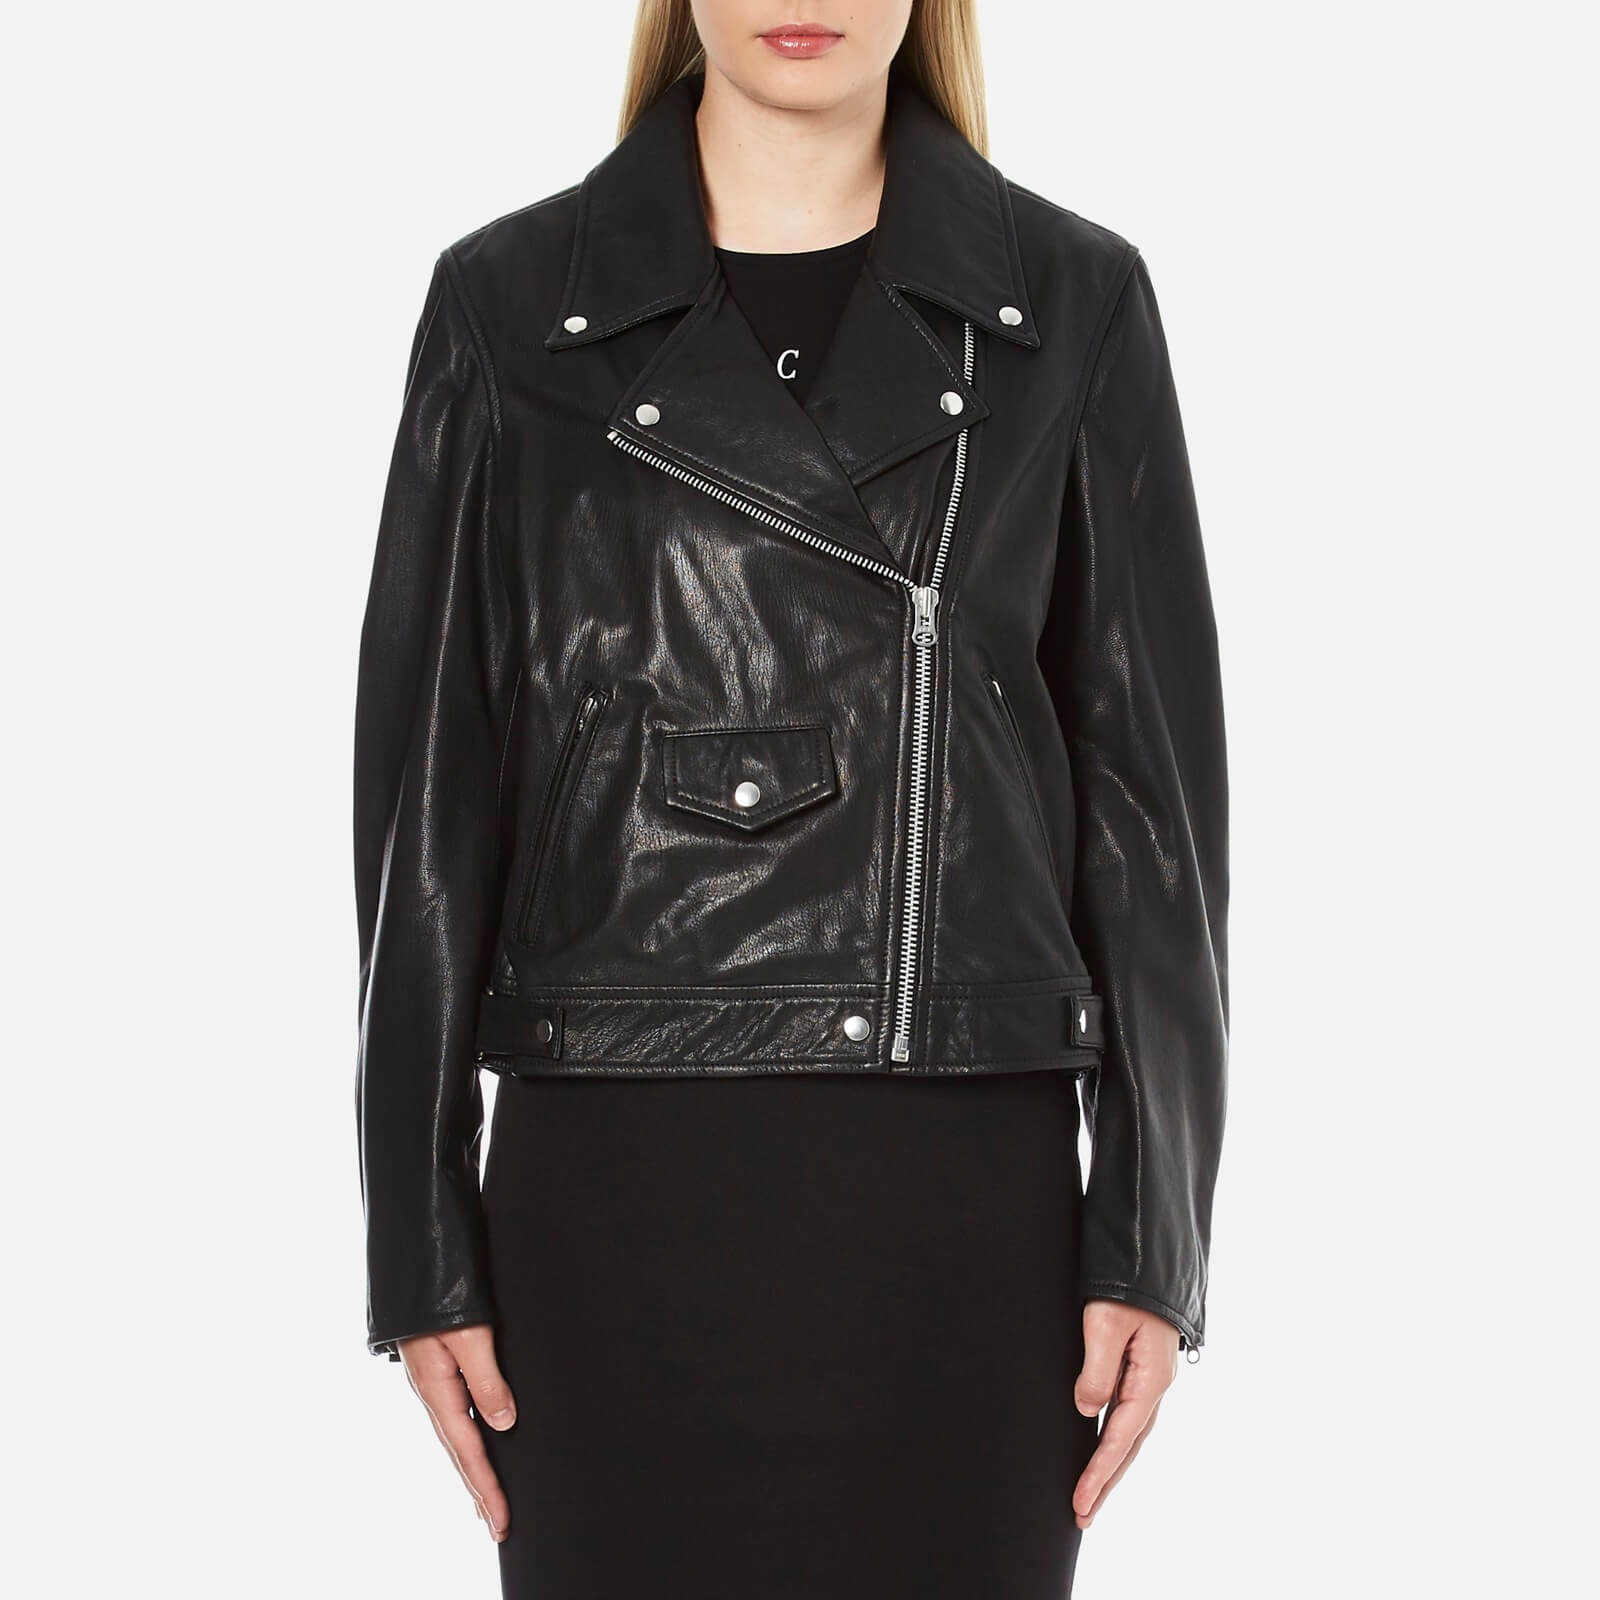 defe729a15461 McQ Alexander McQueen Women's Casual Leather Biker Jacket - Black - Free UK  Delivery over £50